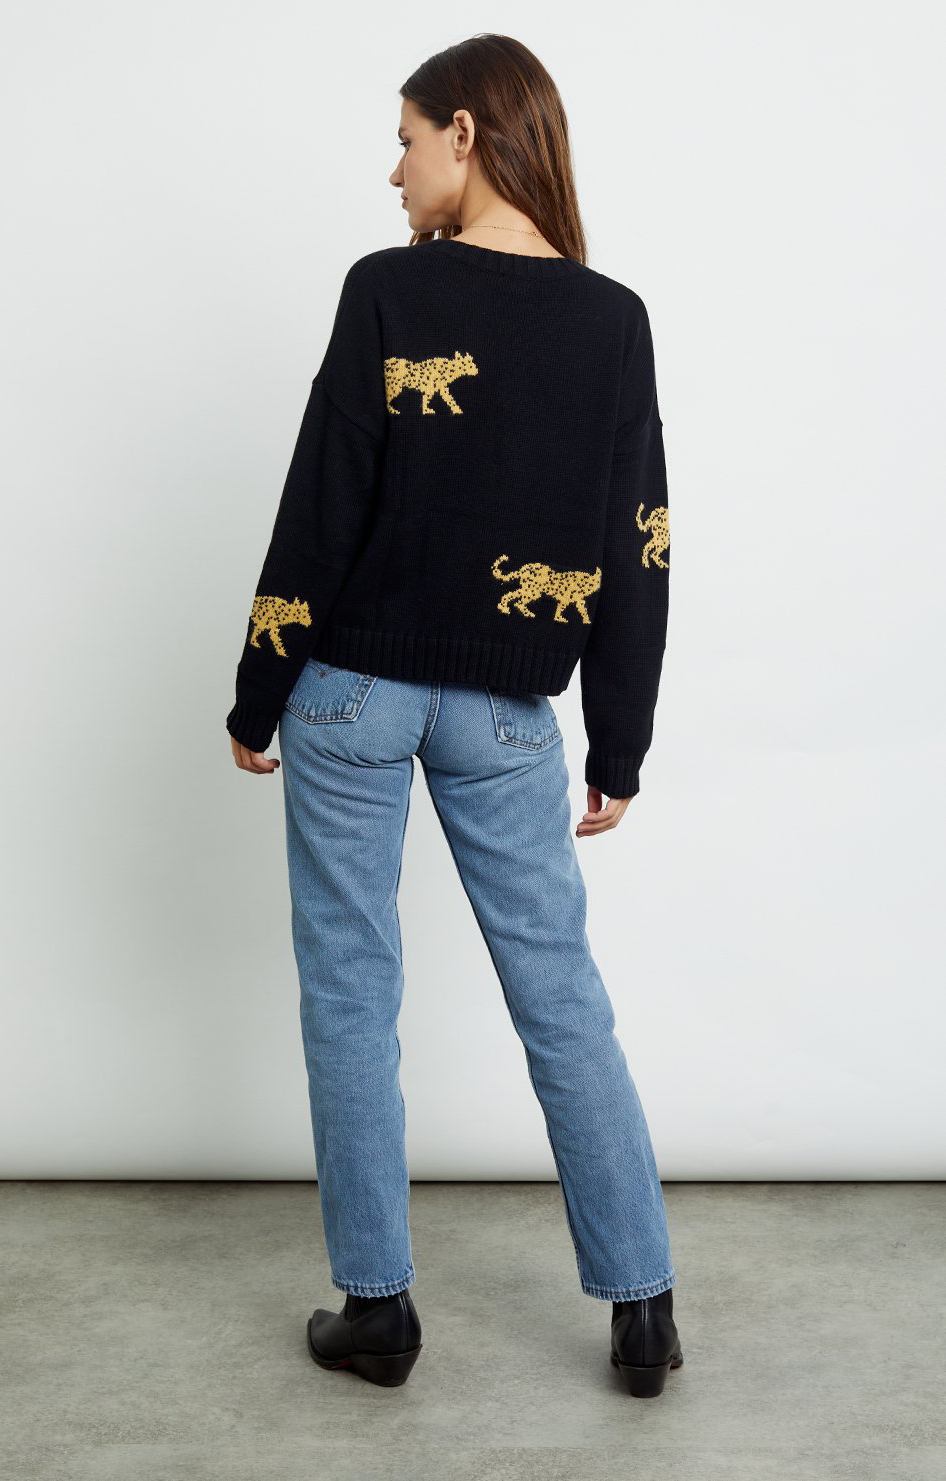 Perci Sweater - Black Jungle Cat